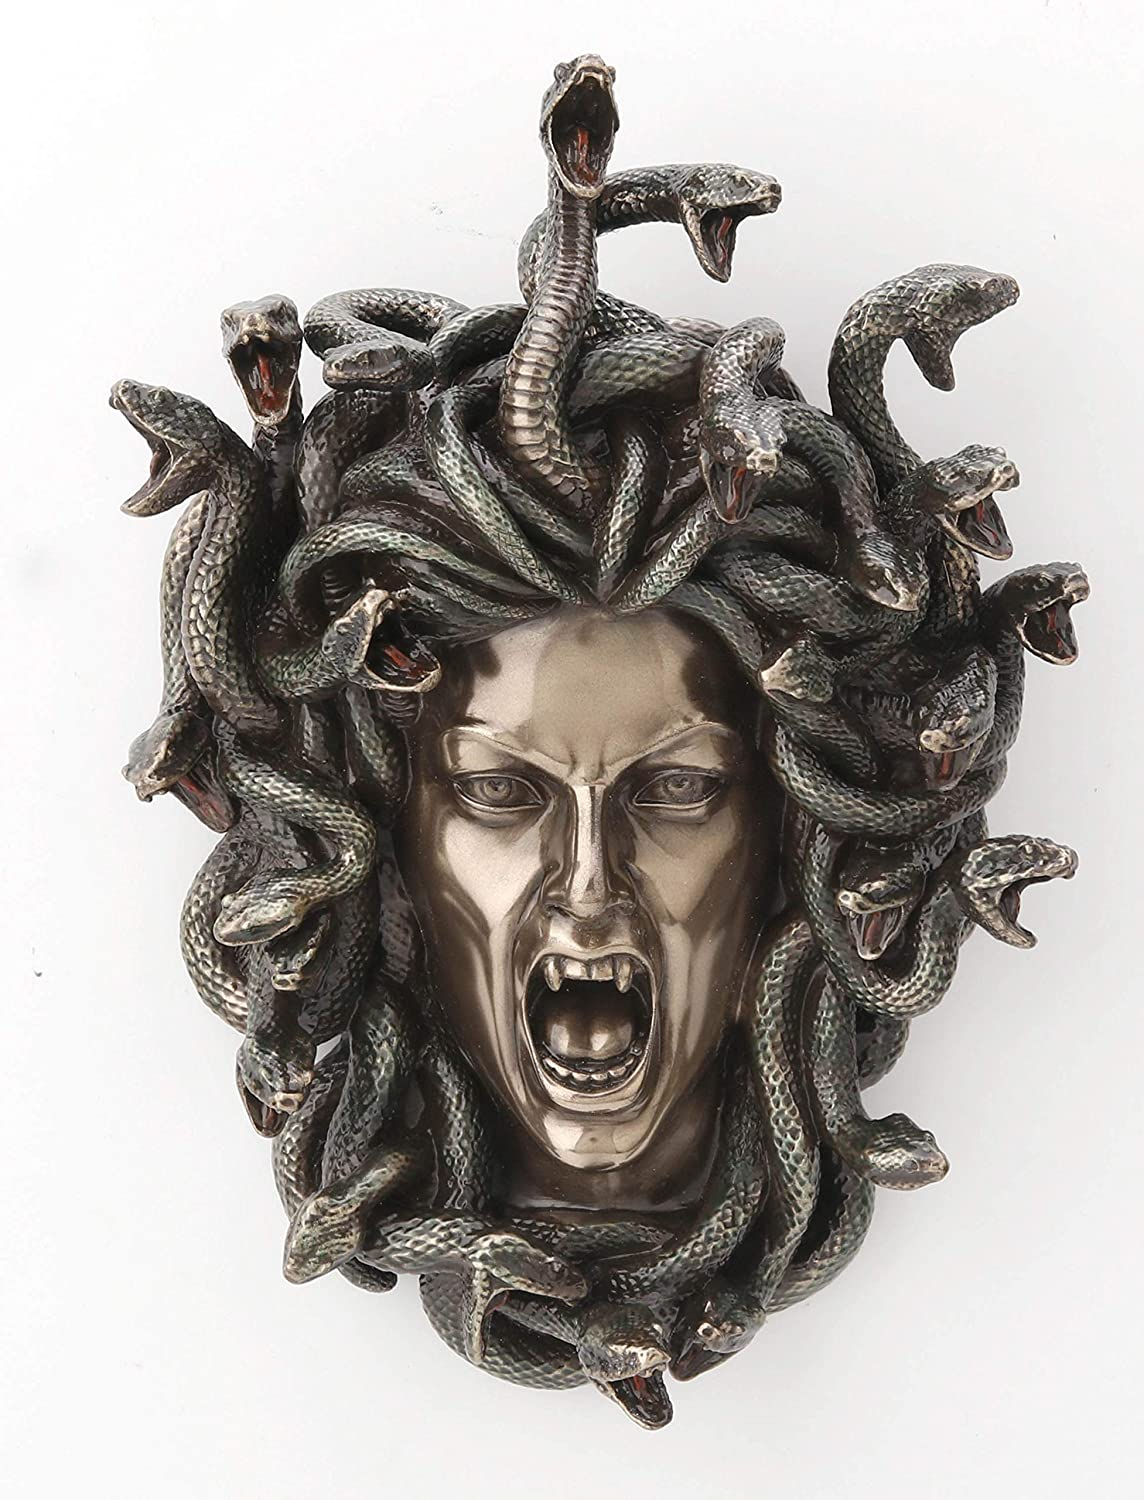 Veronese Design 7 1 4 Inch Greek Of Wall Head Medusa Challenge the lowest price of Japan Cold Plaque Manufacturer direct delivery